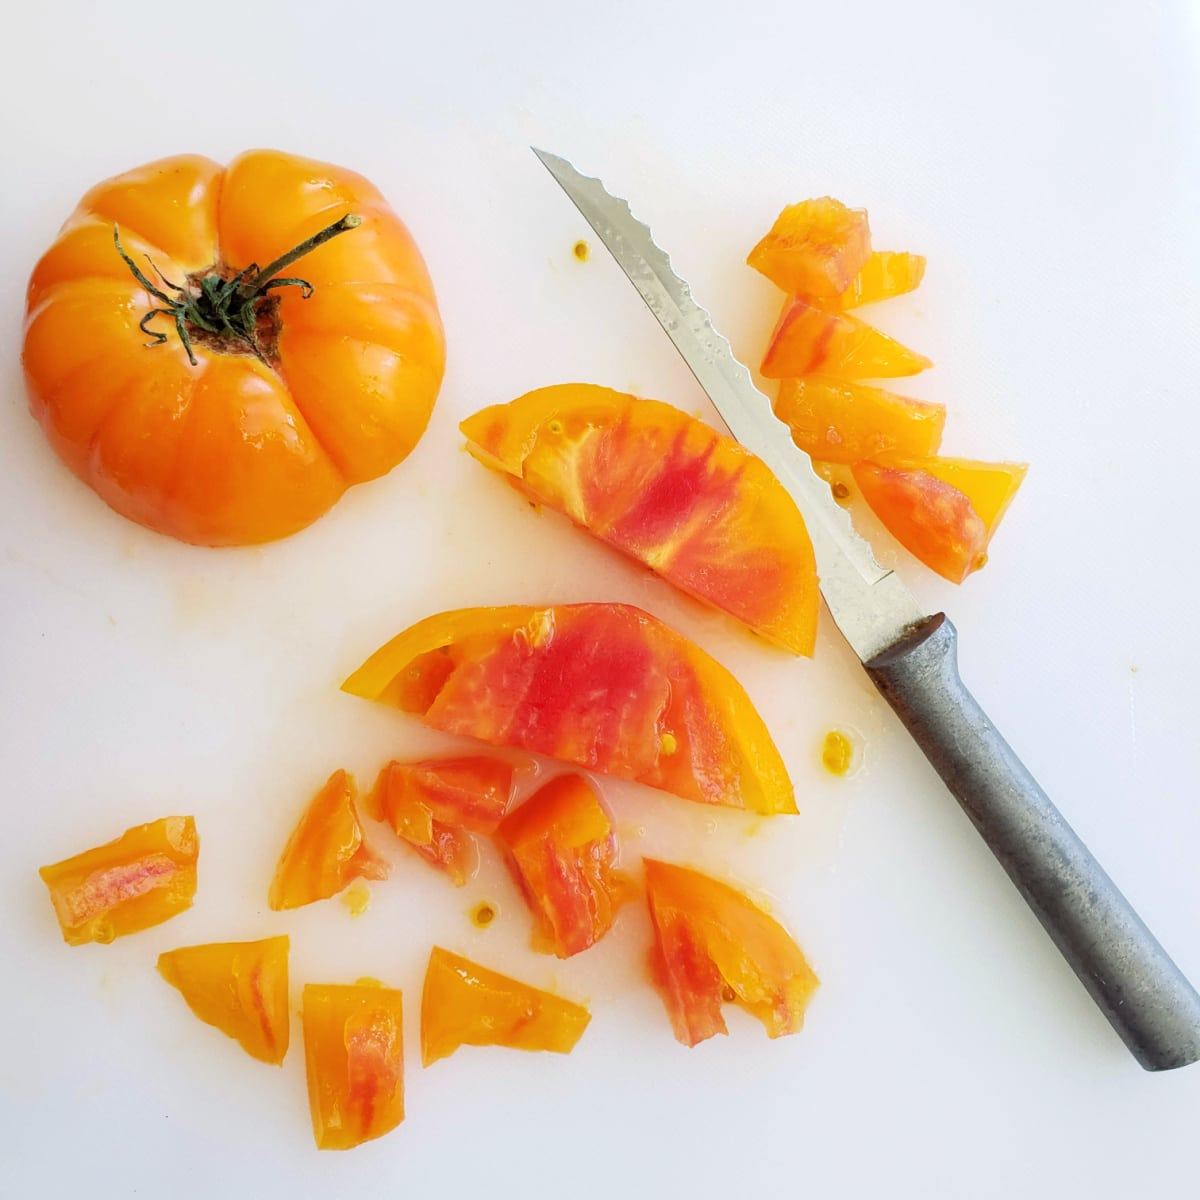 Yellow heirloom tomato on a white cutting board with a knife